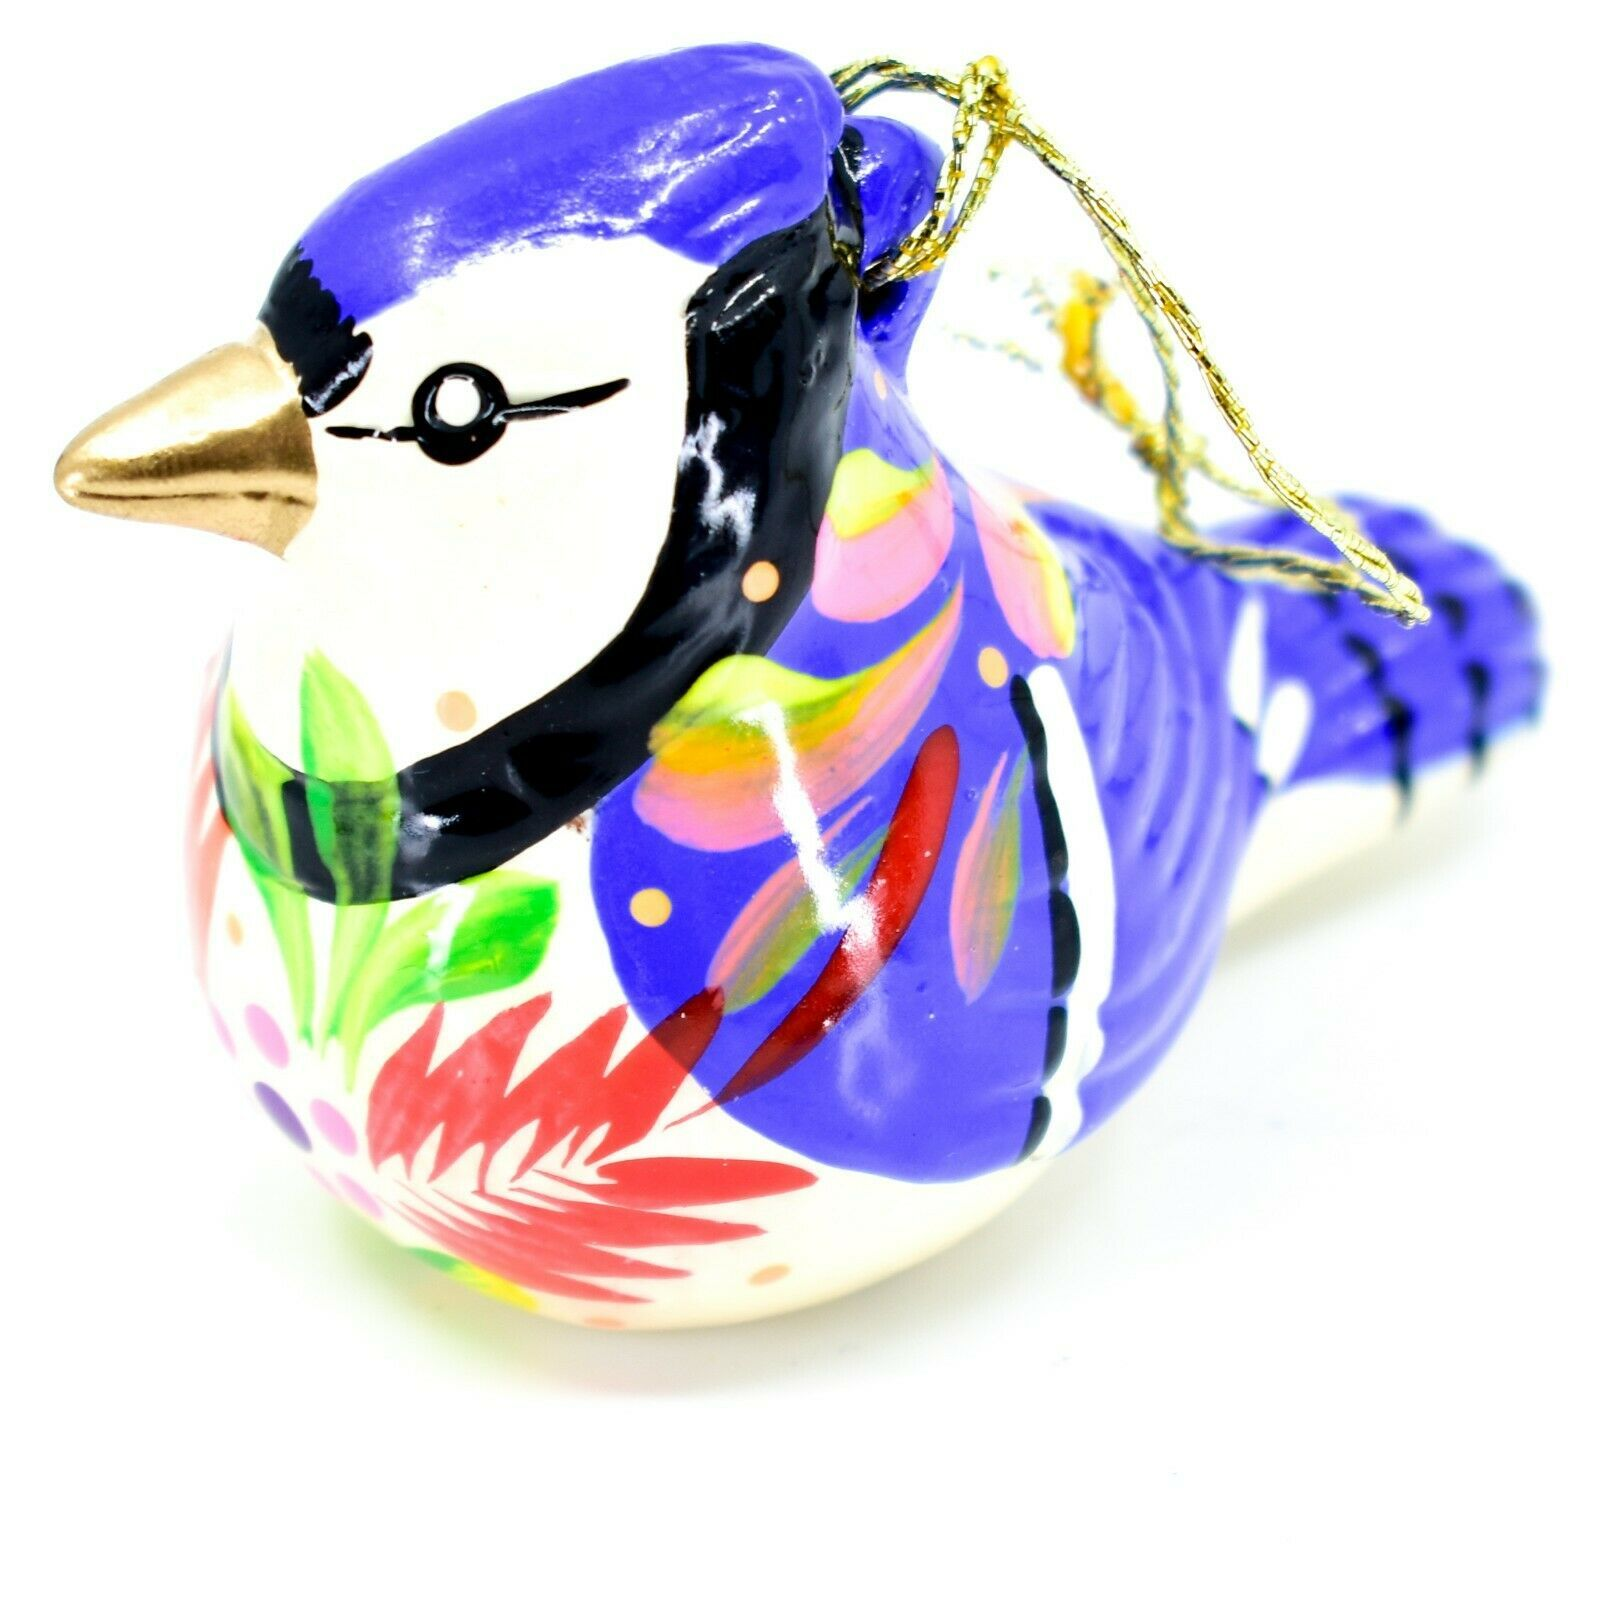 Handcrafted Painted Ceramic Blue Jay Confetti Ornament Made in Peru